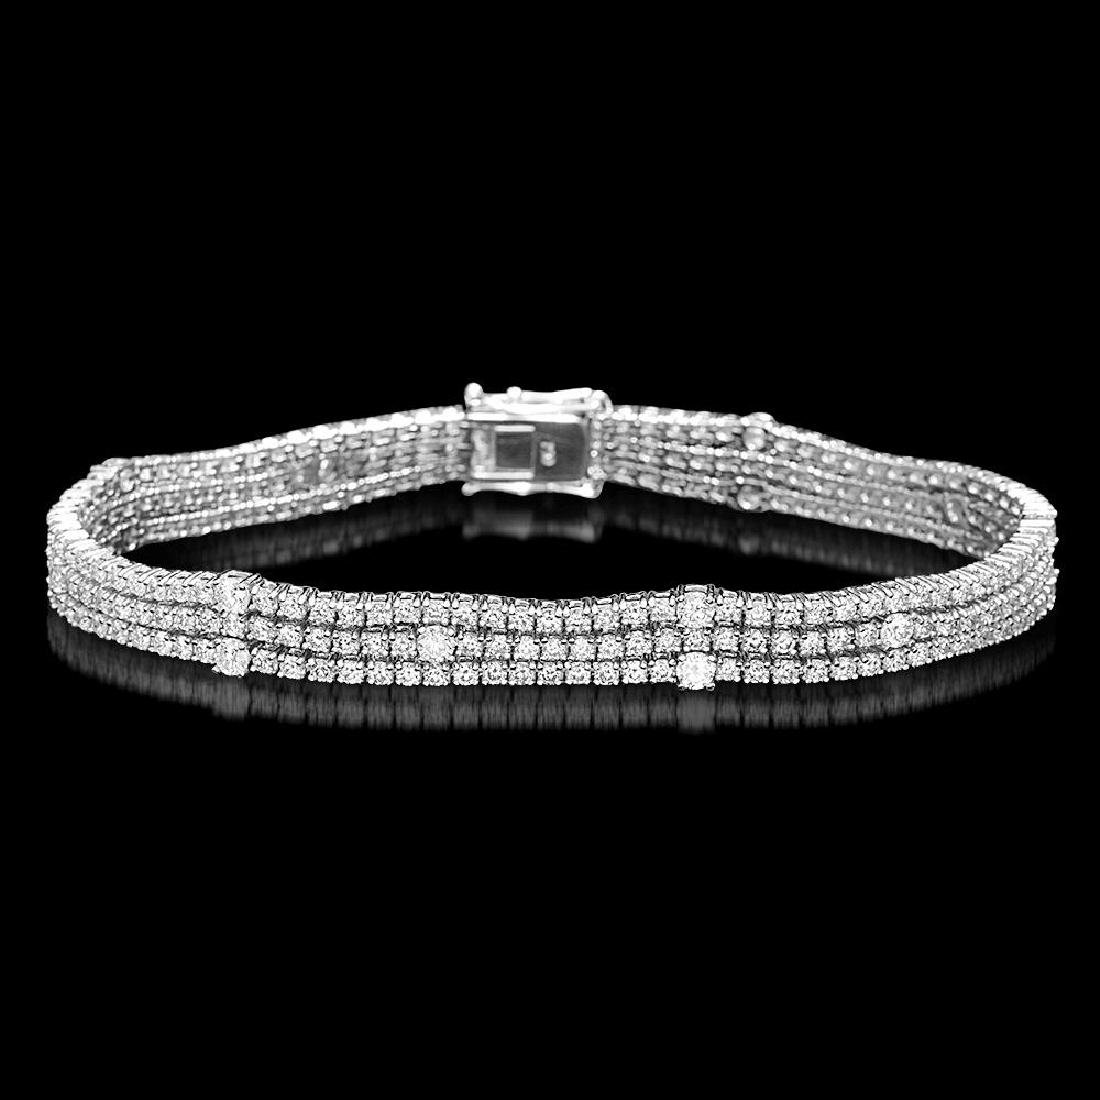 18K Gold 5.96ct Diamond Bracelet